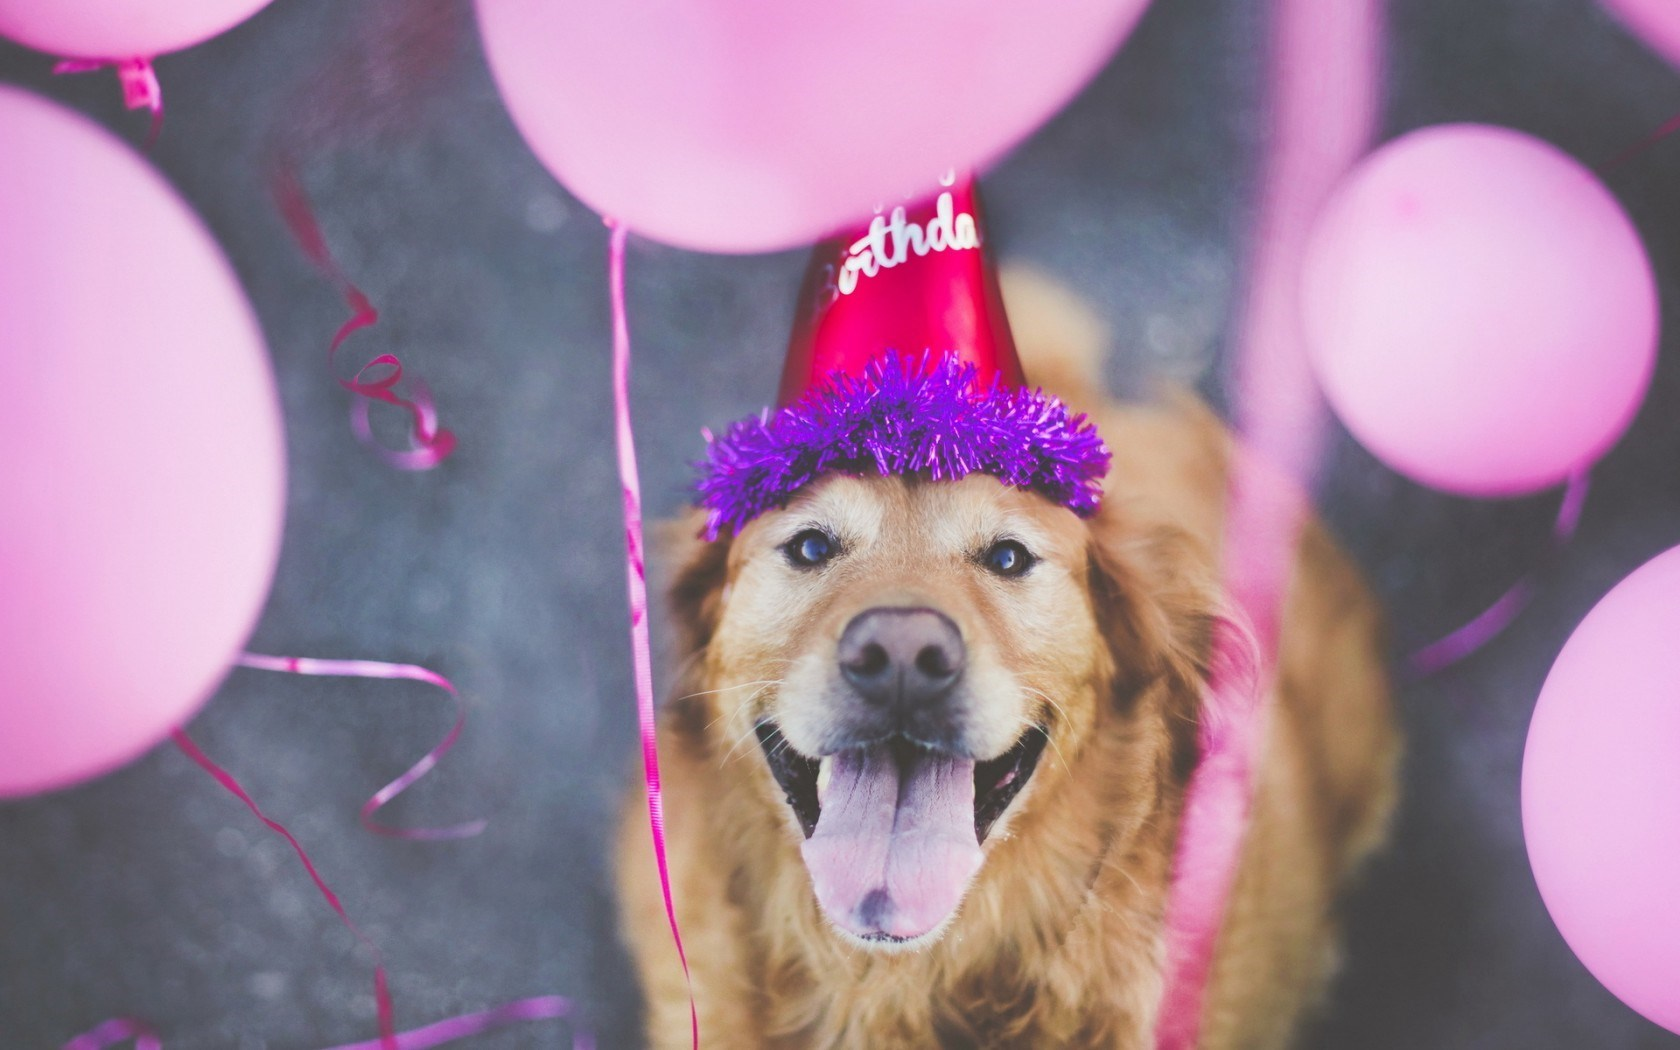 Dog Happy Birthday - Wallpaper, High Definition, High ... - photo#16